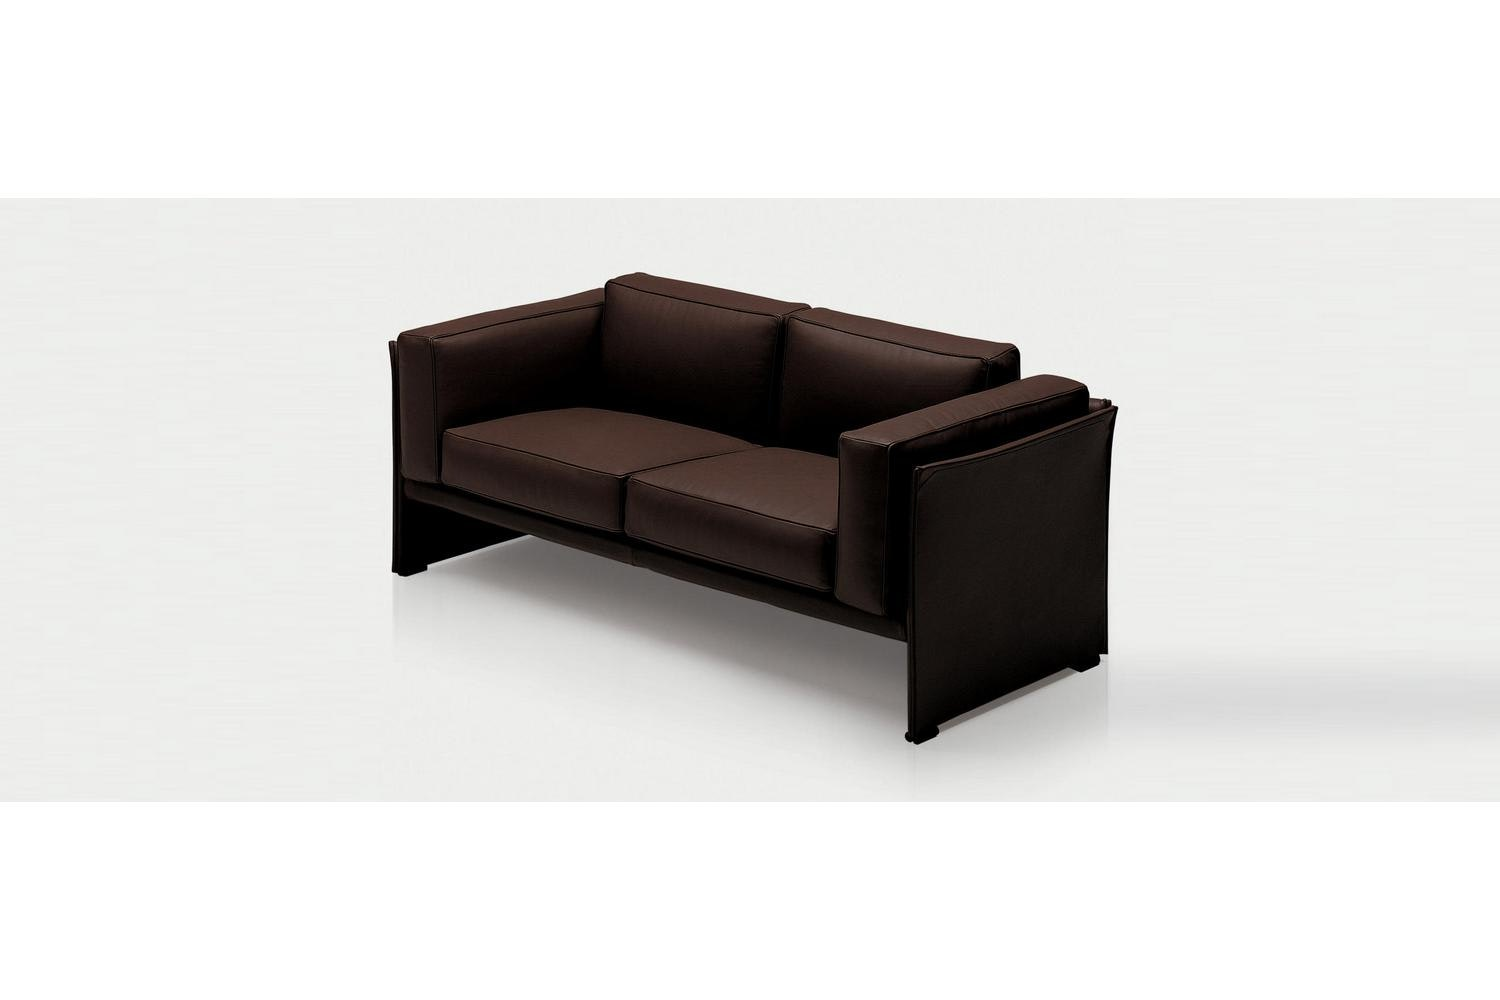 405 Duc Sofa by Mario Bellini for Cassina